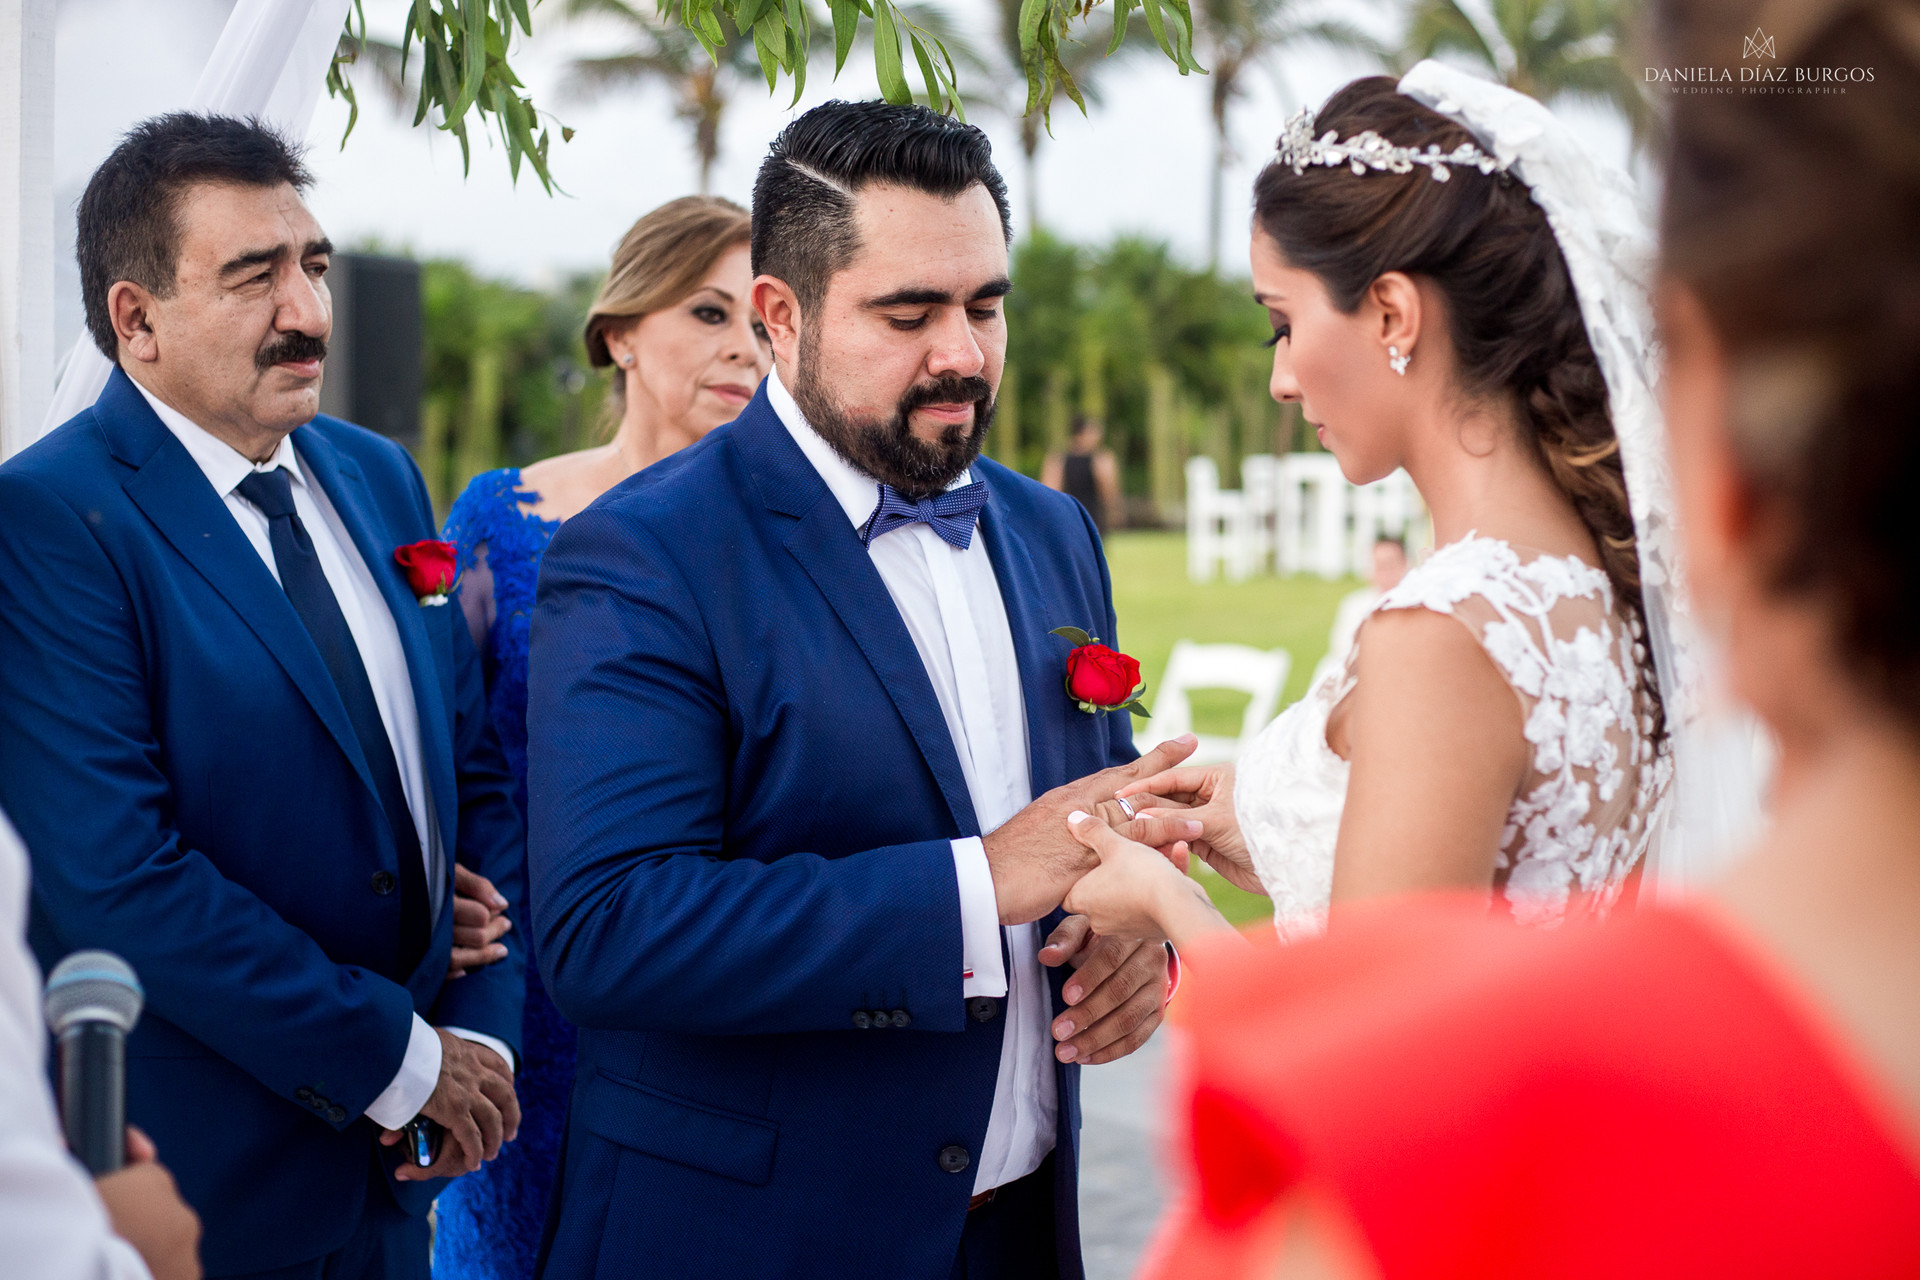 Zuza+Sergio-Wedding-LD-189.jpg